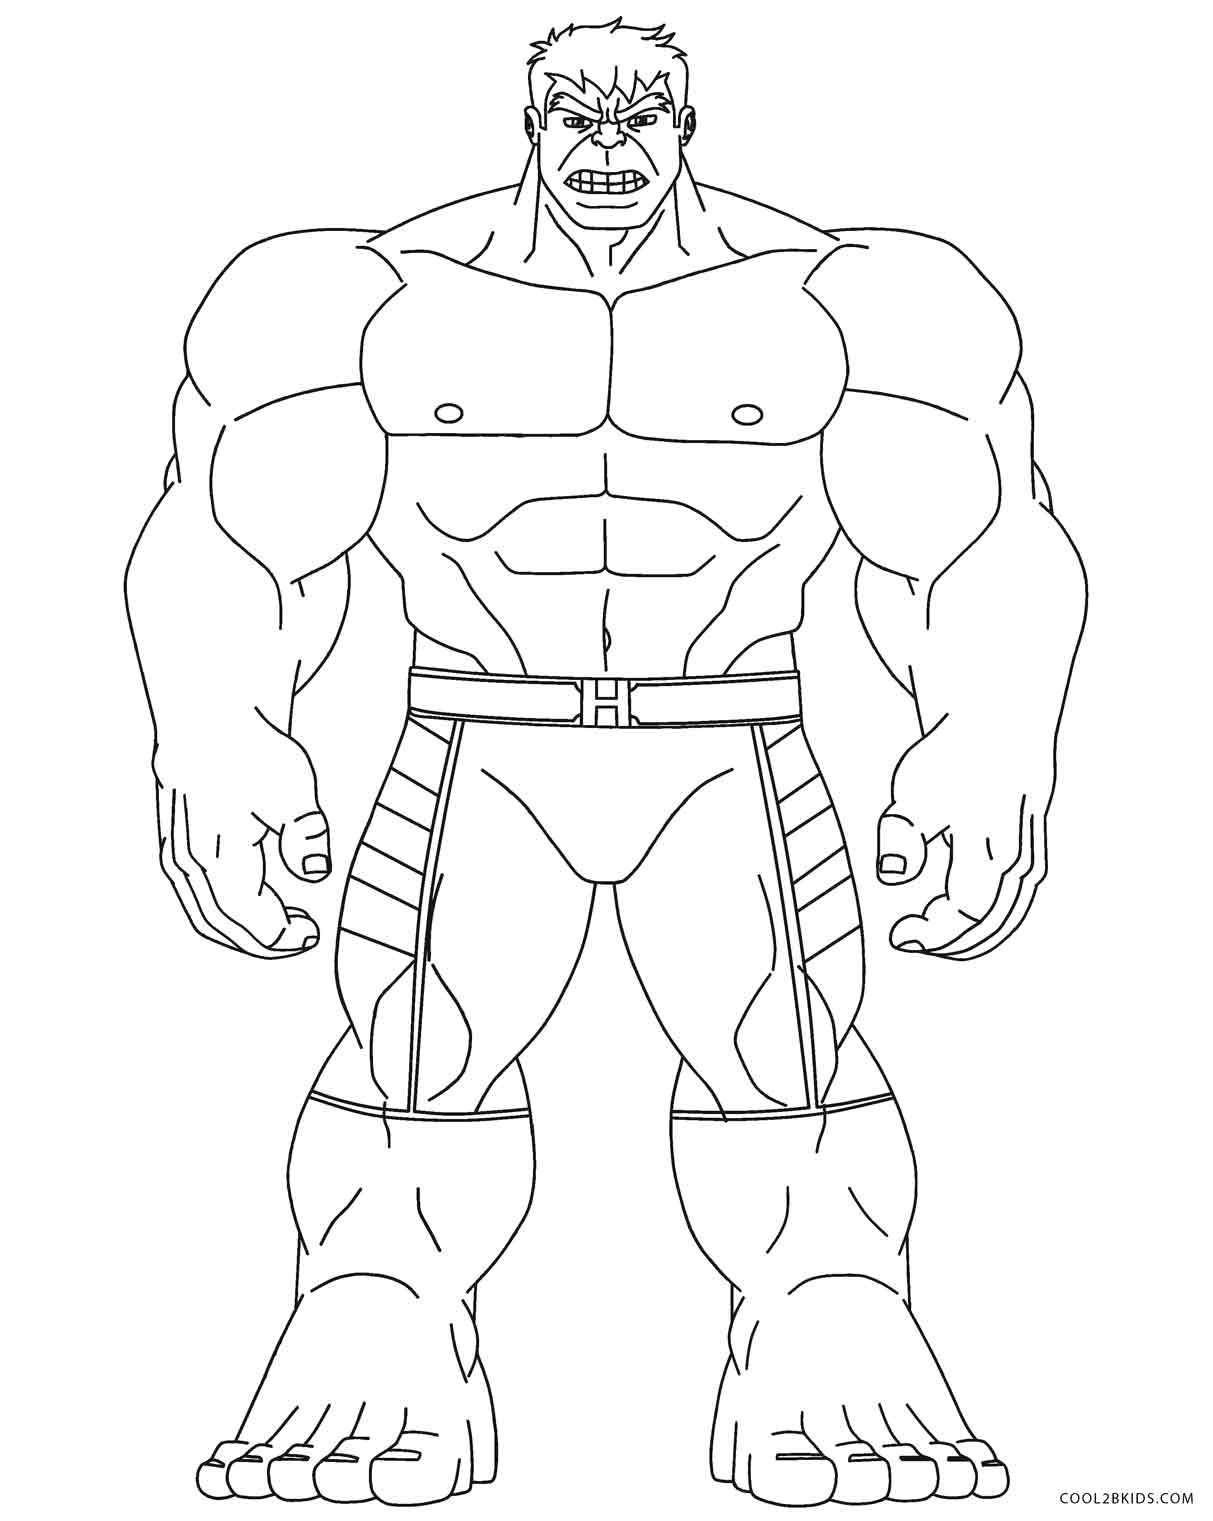 spider hulk coloring pages - photo#22